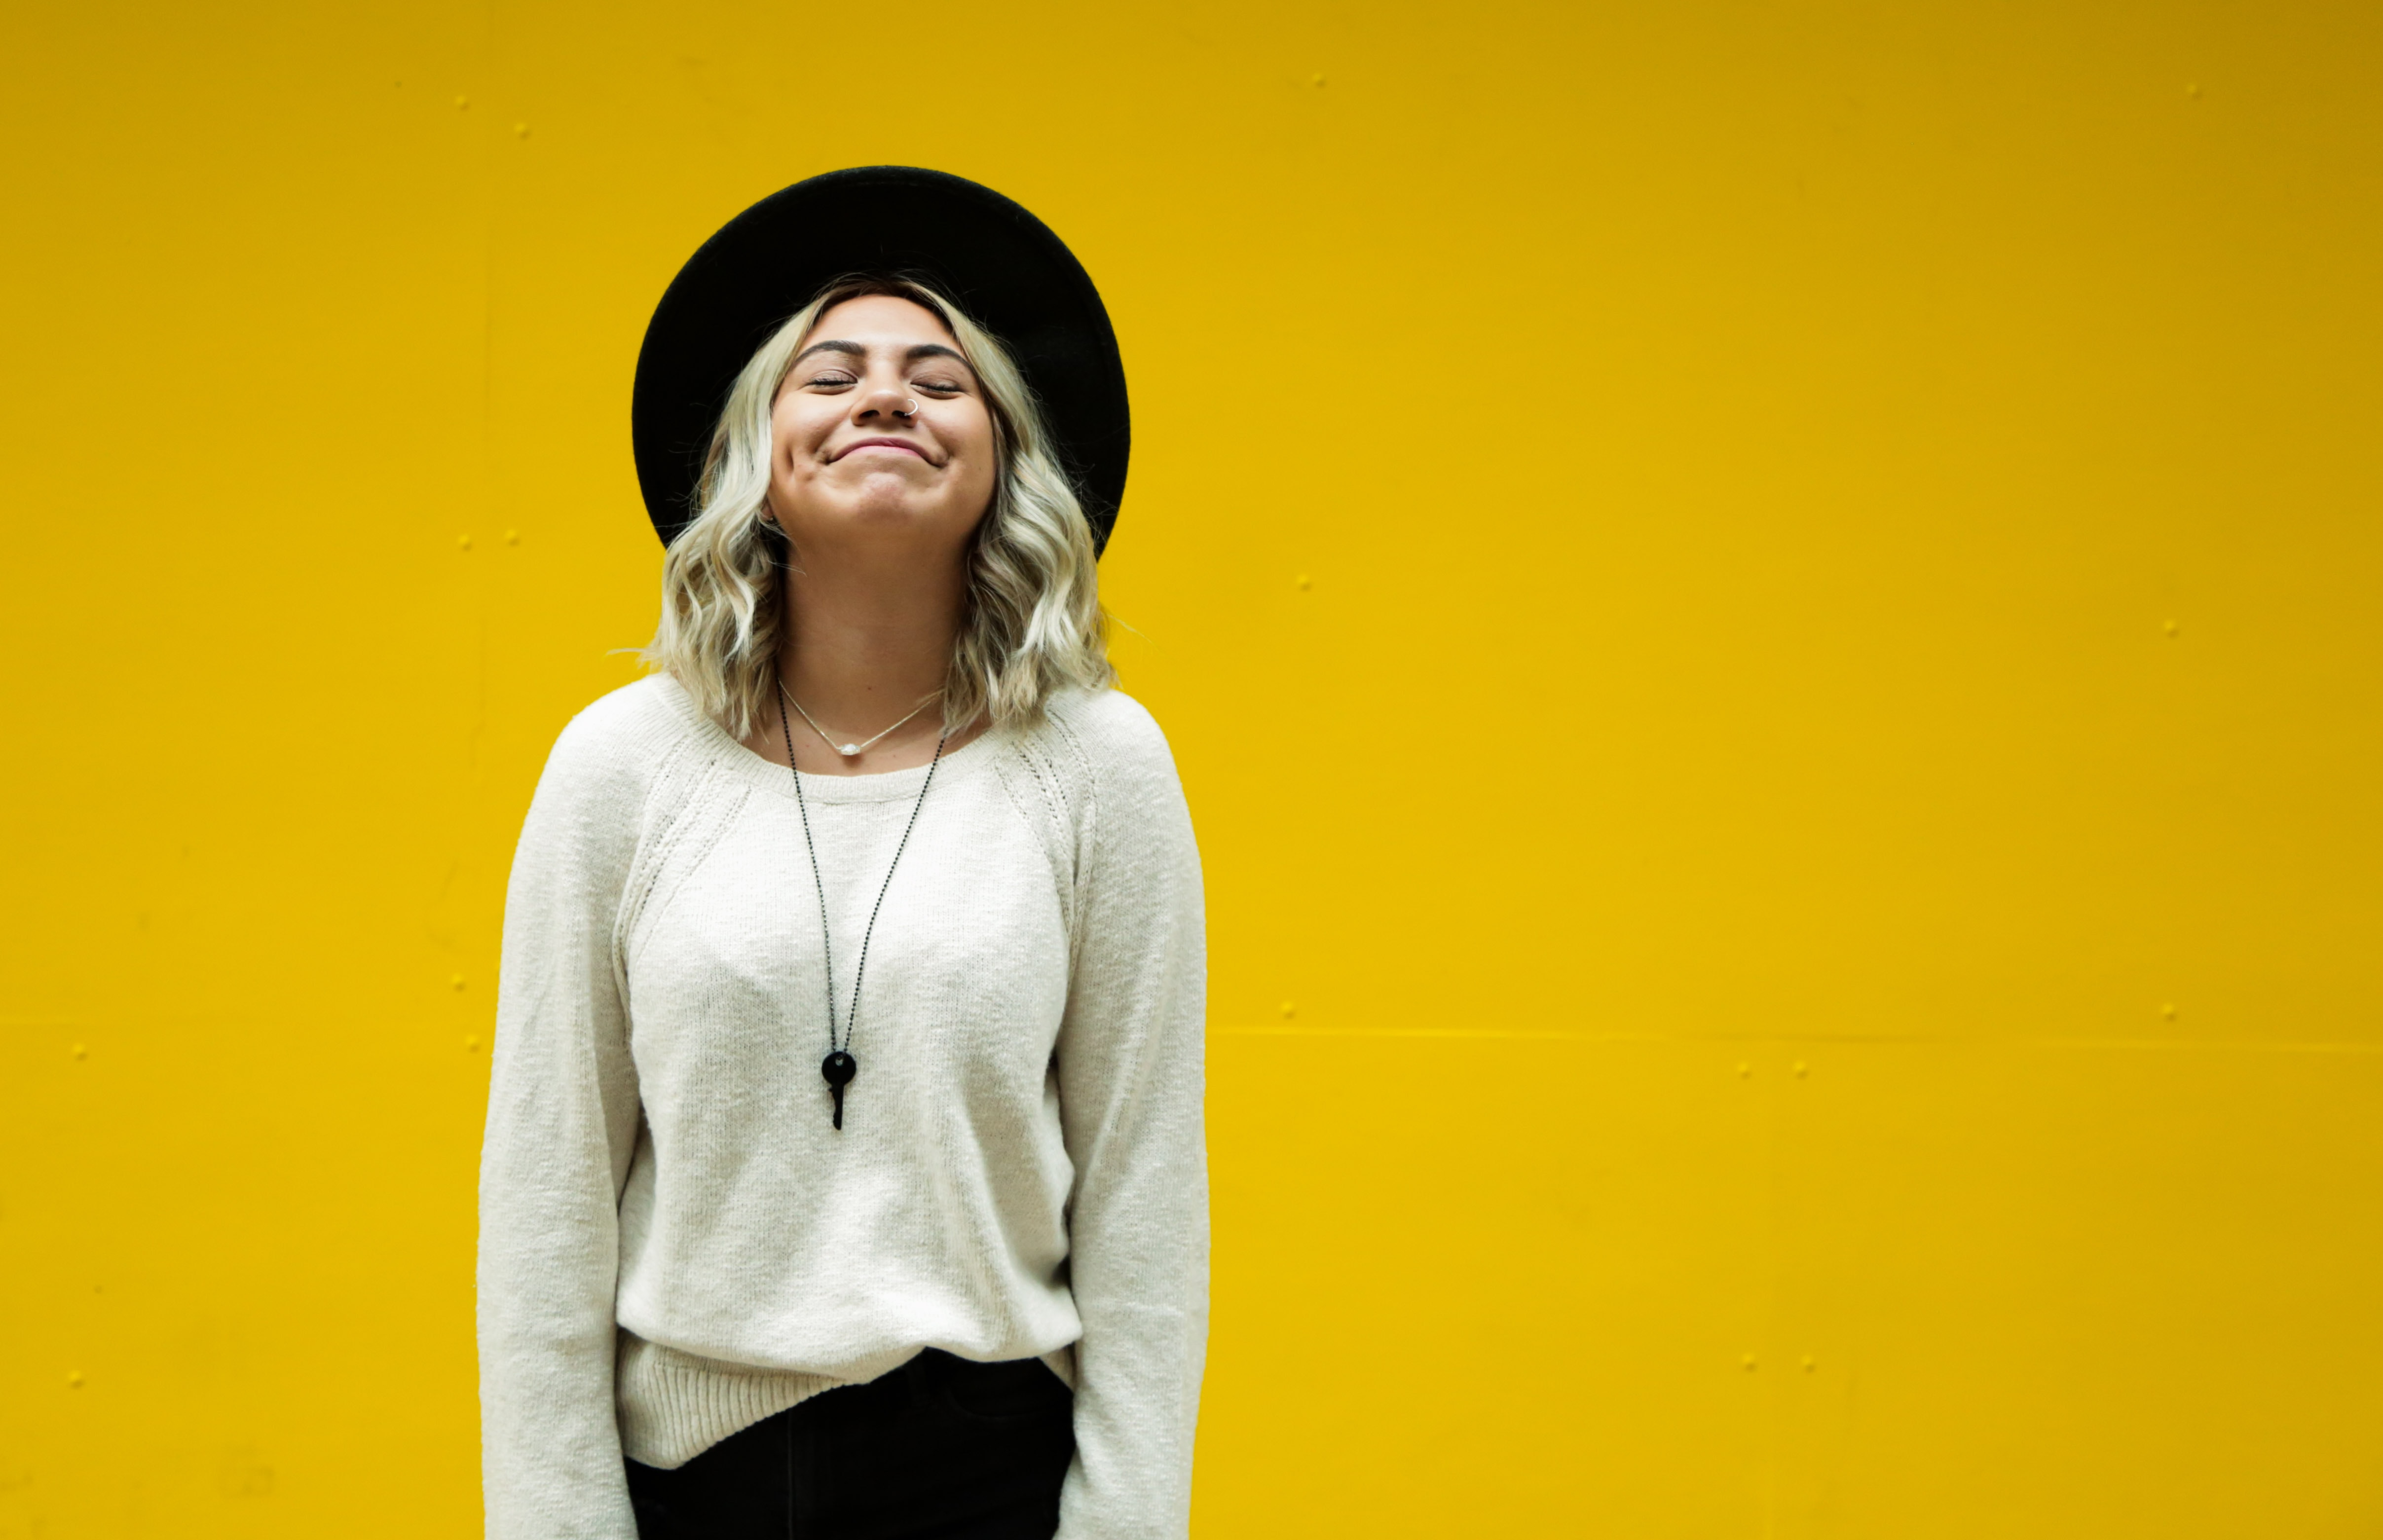 woman wearing white sweater smiling in front of a yellow wall